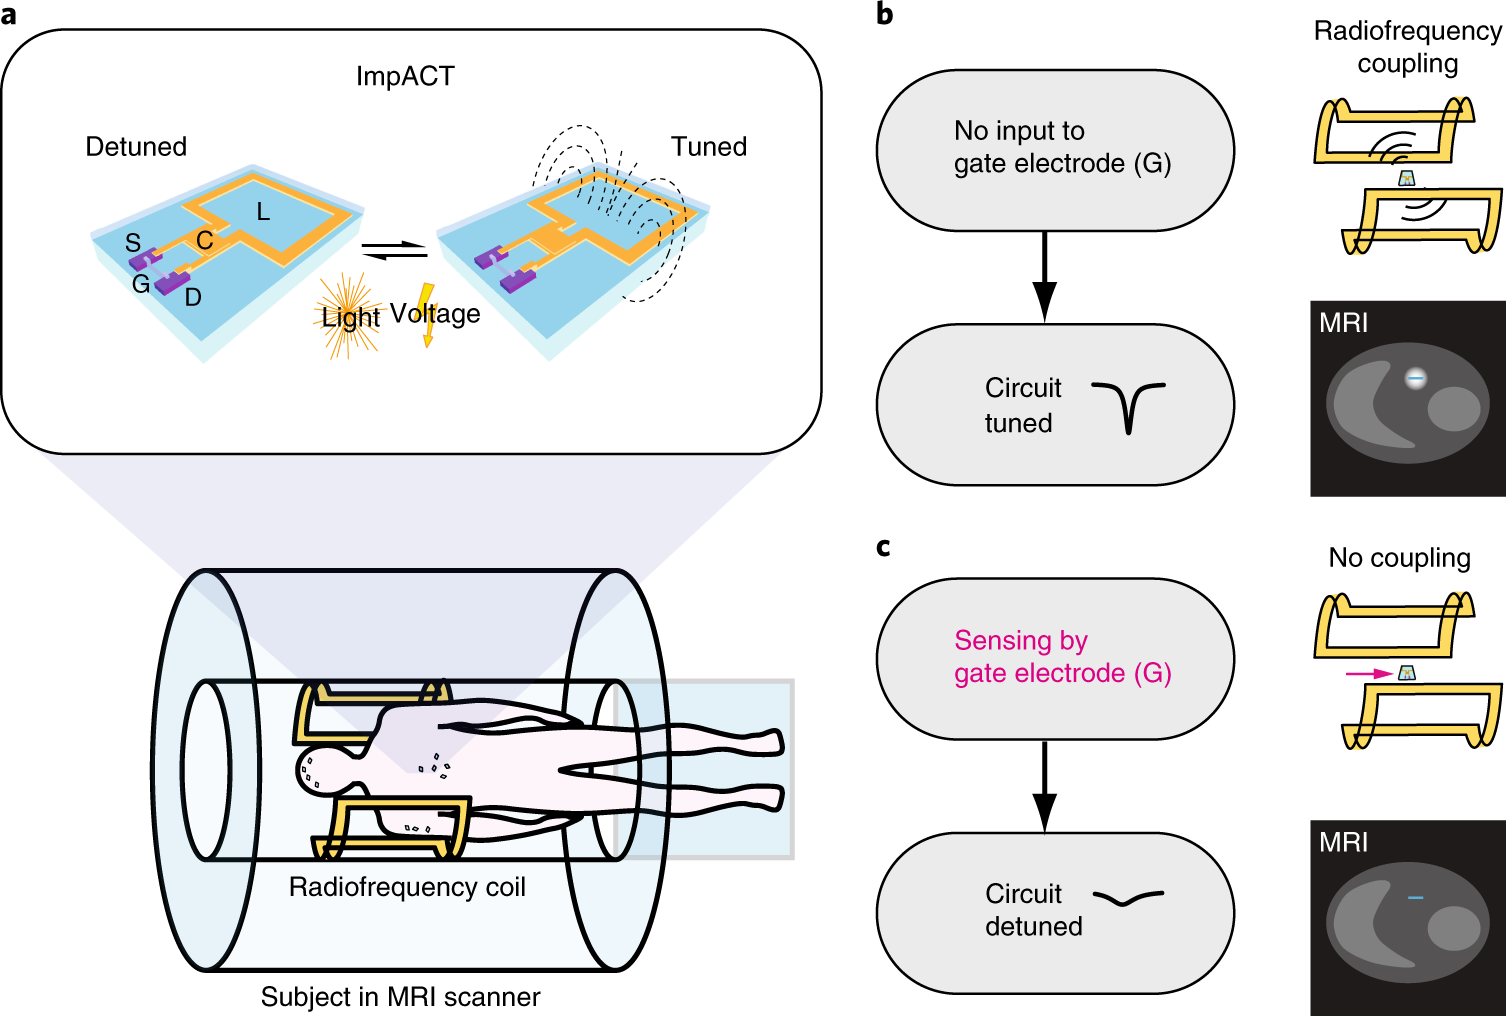 Wireless Resonant Circuits For The Minimally Invasive Sensing Of If Circuit Radio Frequency Npn Amplifier Biophysical Processes In Magnetic Resonance Imaging Nature Biomedical Engineering